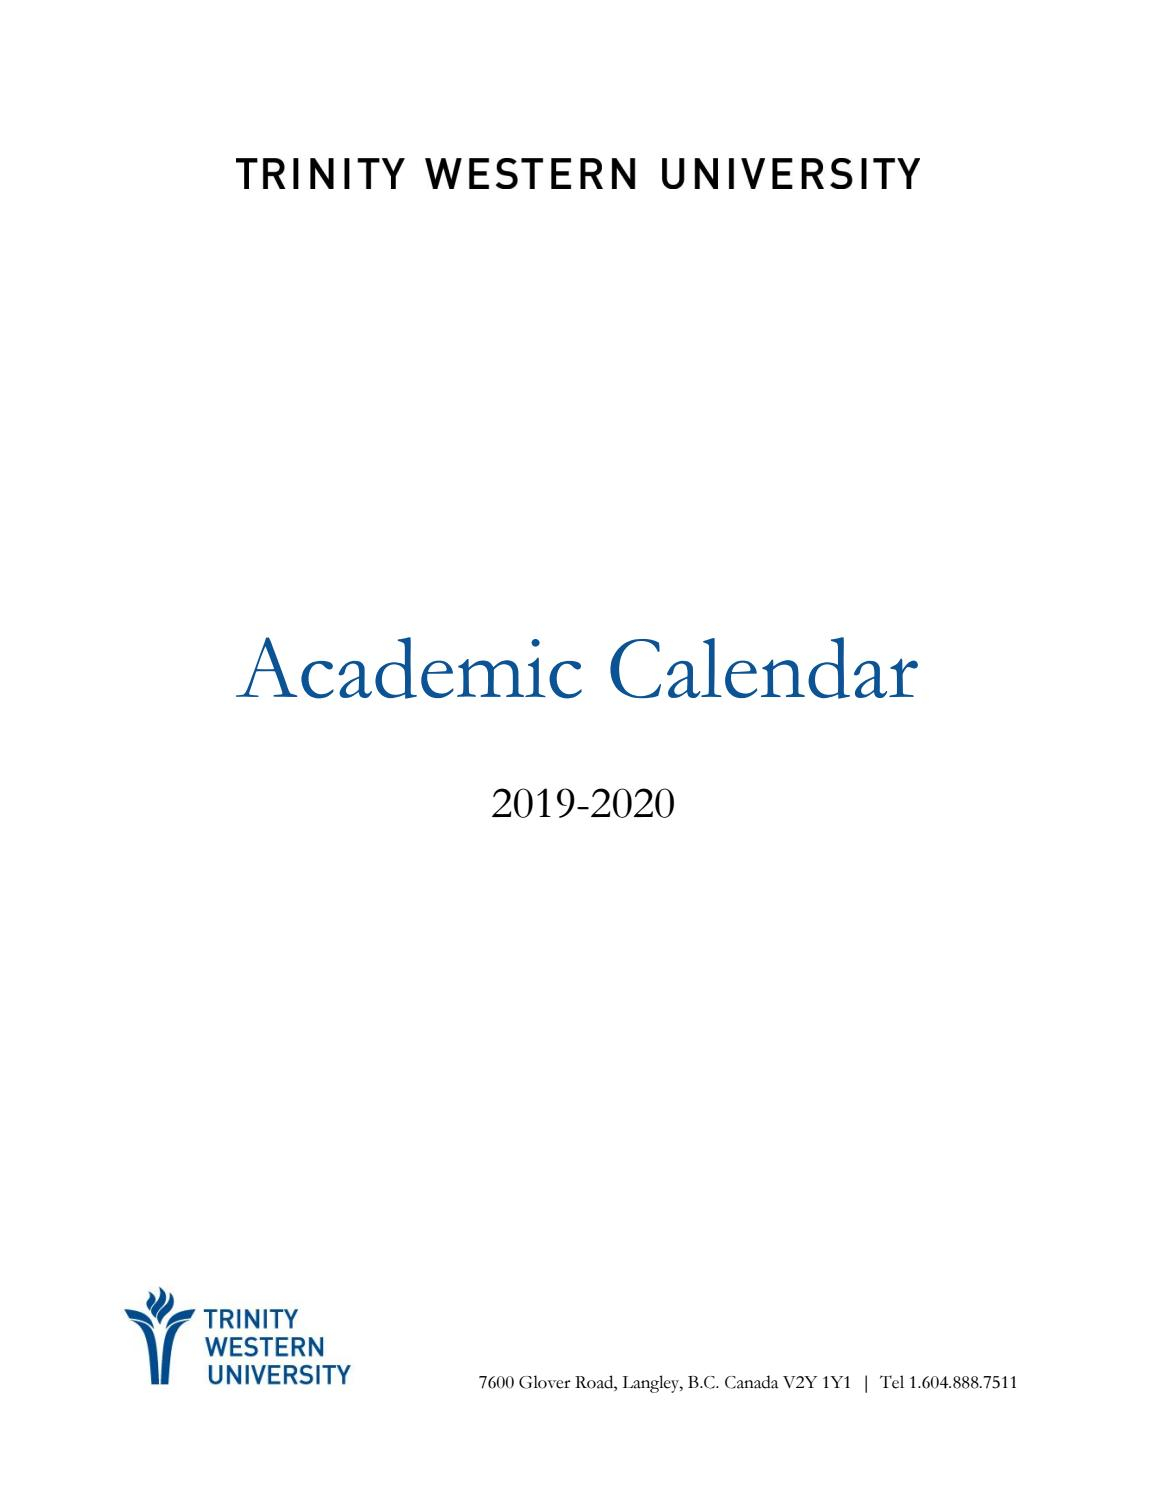 2019-20 Academic Calendartwu - Issuu pertaining to Saint Rose Academic Calendar